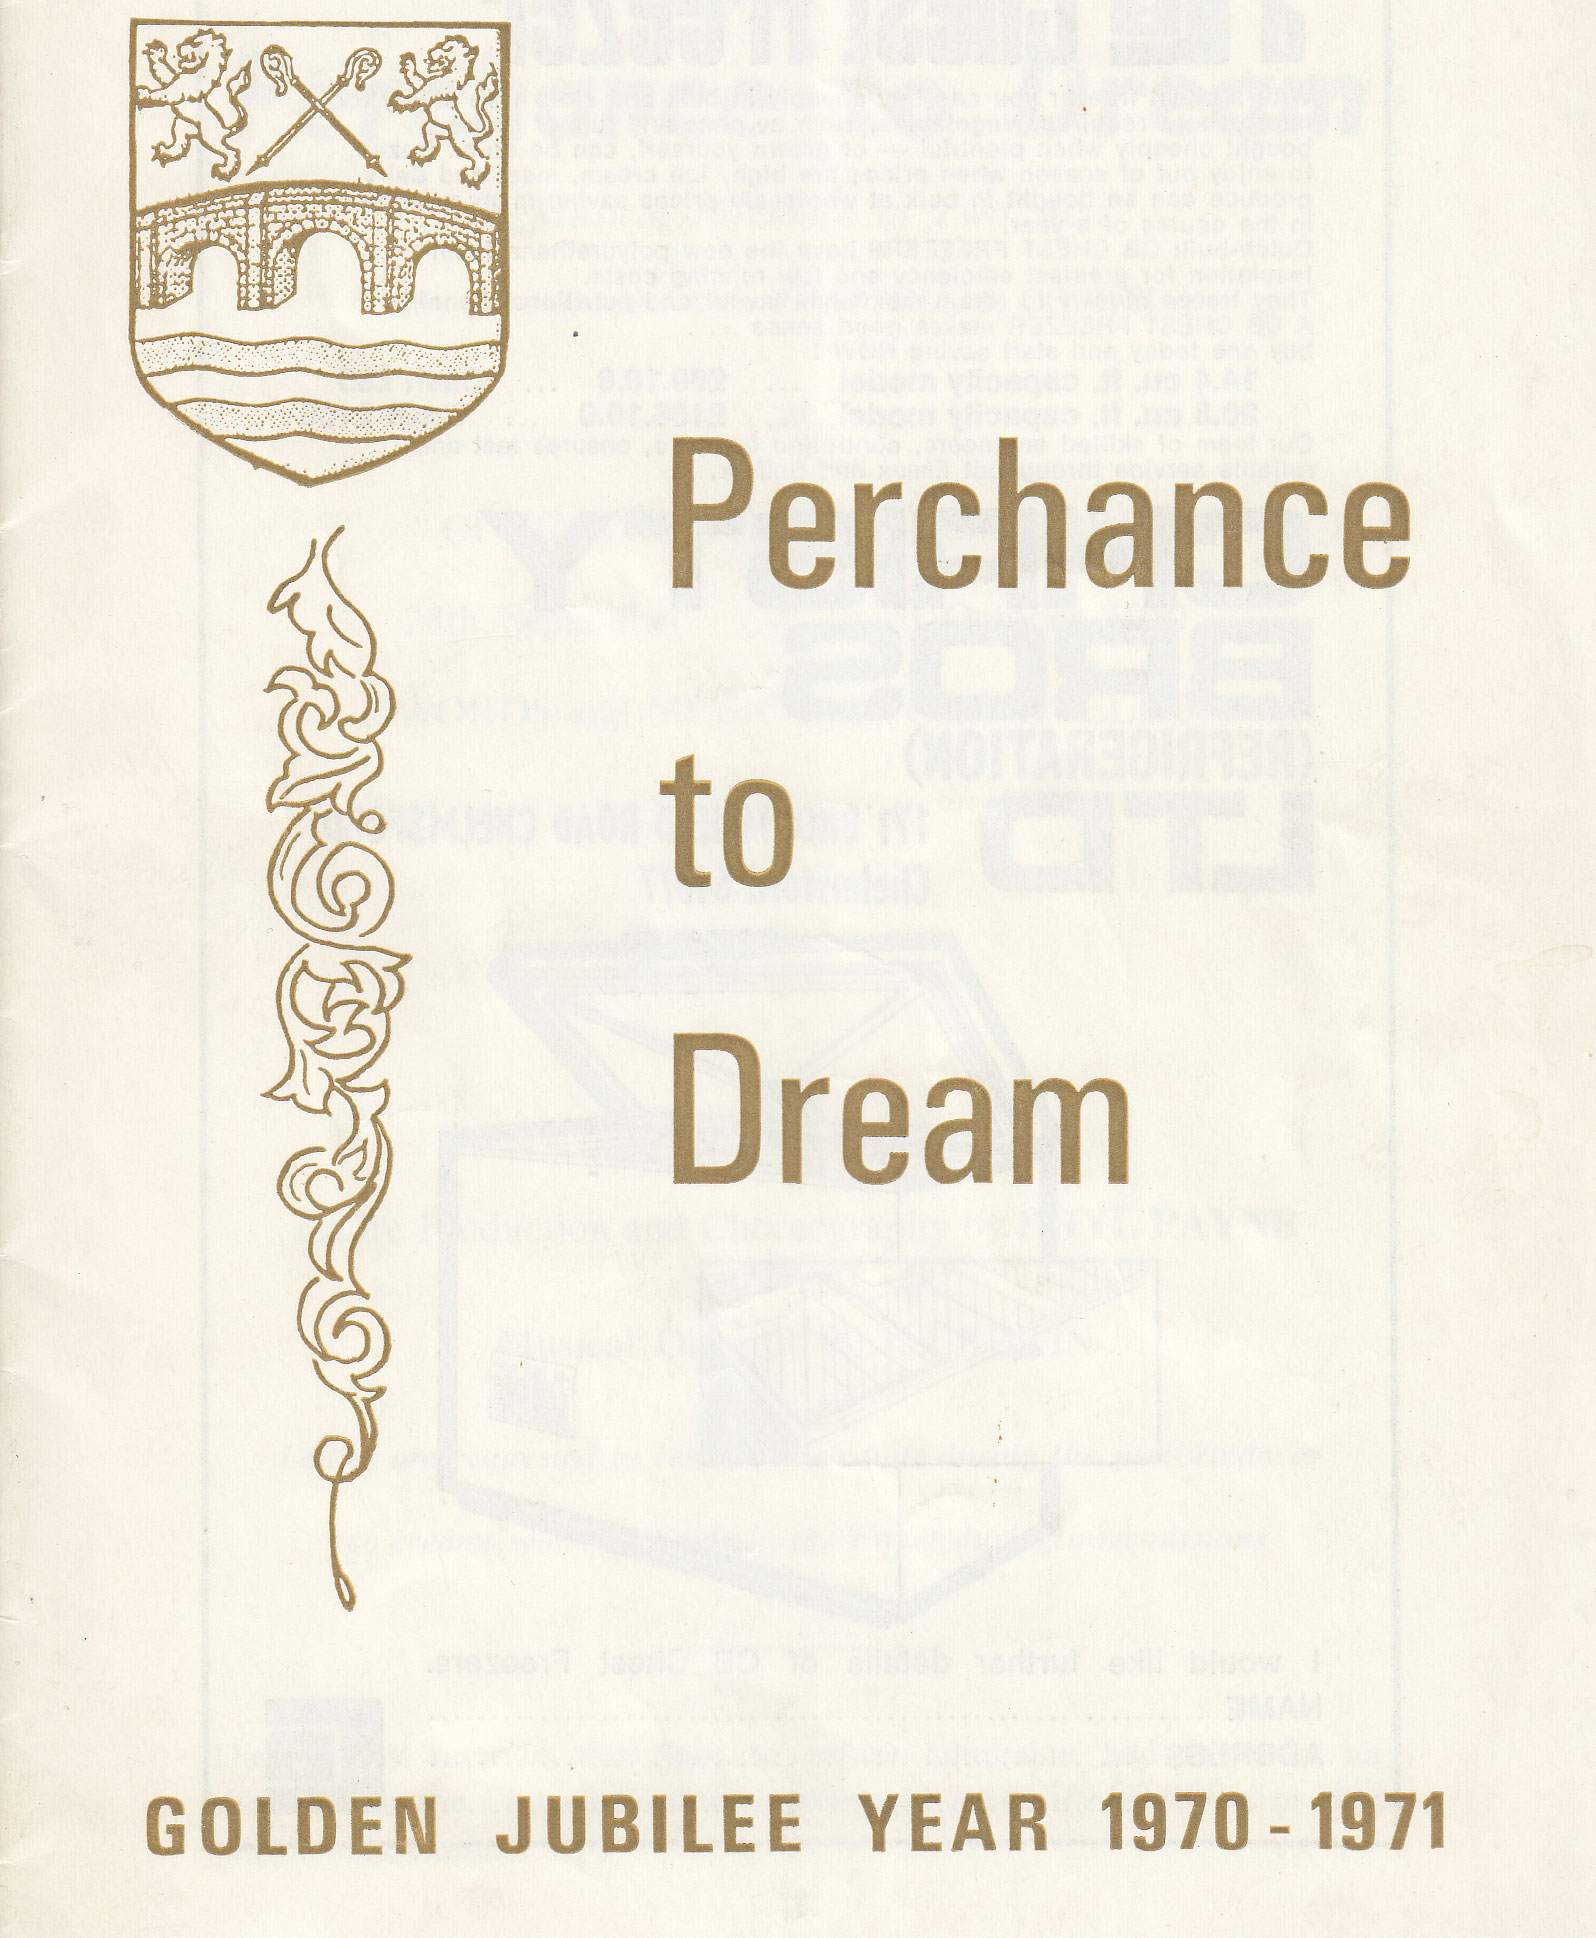 Perchance to Dream (1970)